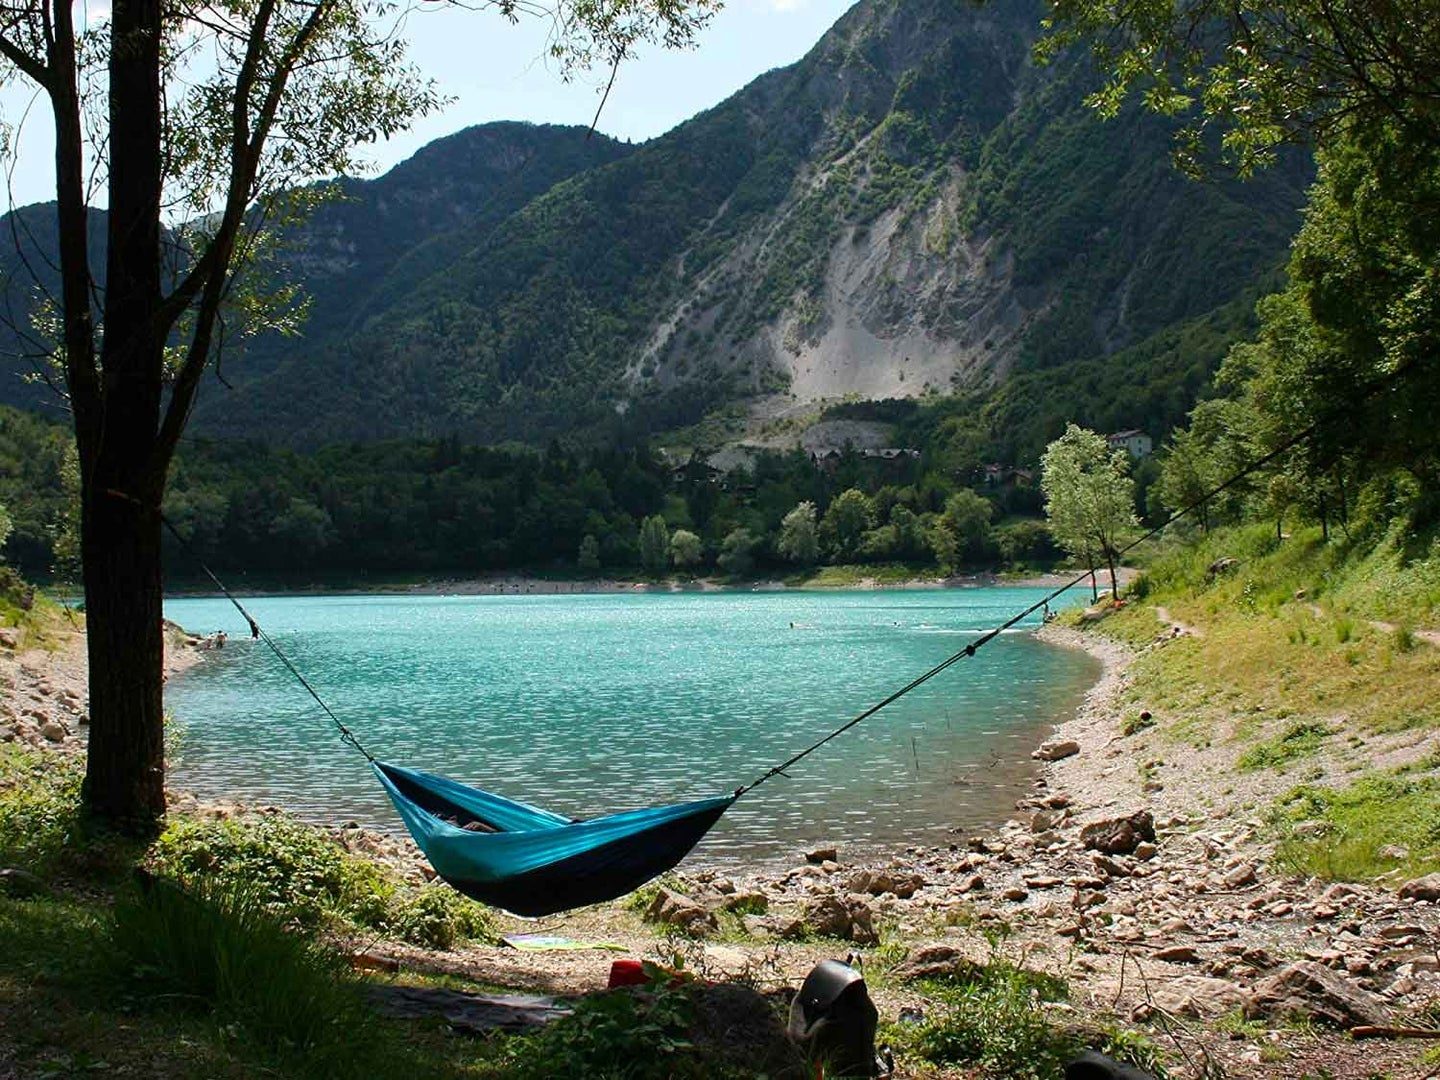 Campsite with hammock by a lake